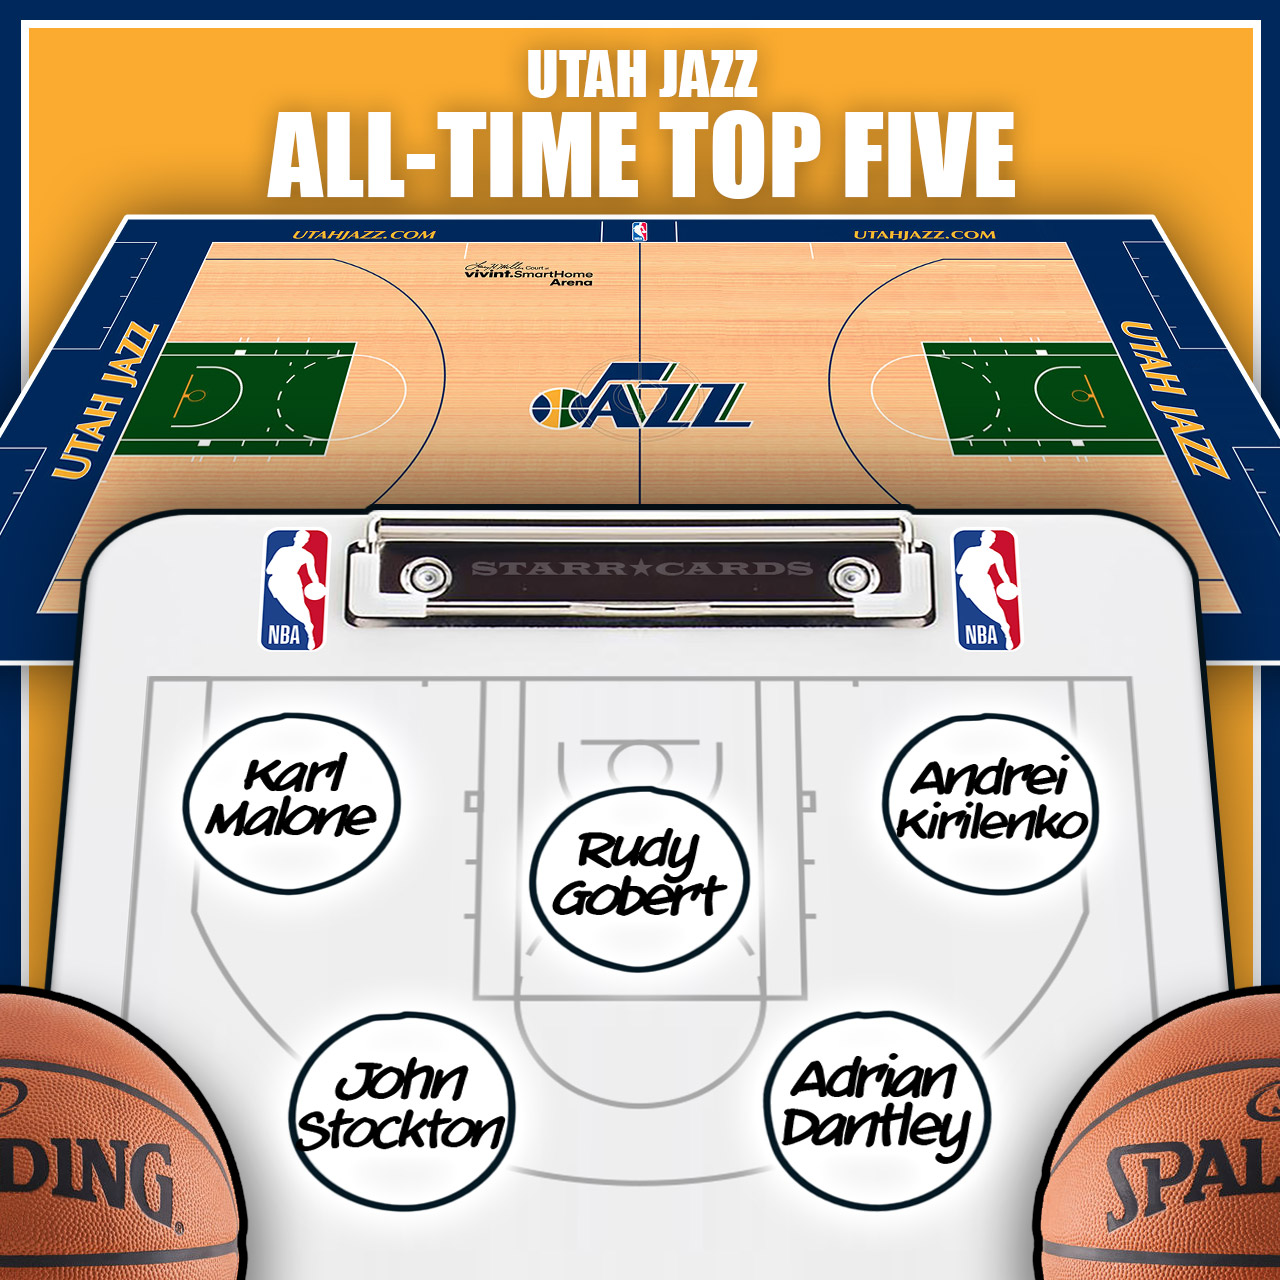 Karl Malone leads Utah Jazz all-time top five by Win Shares